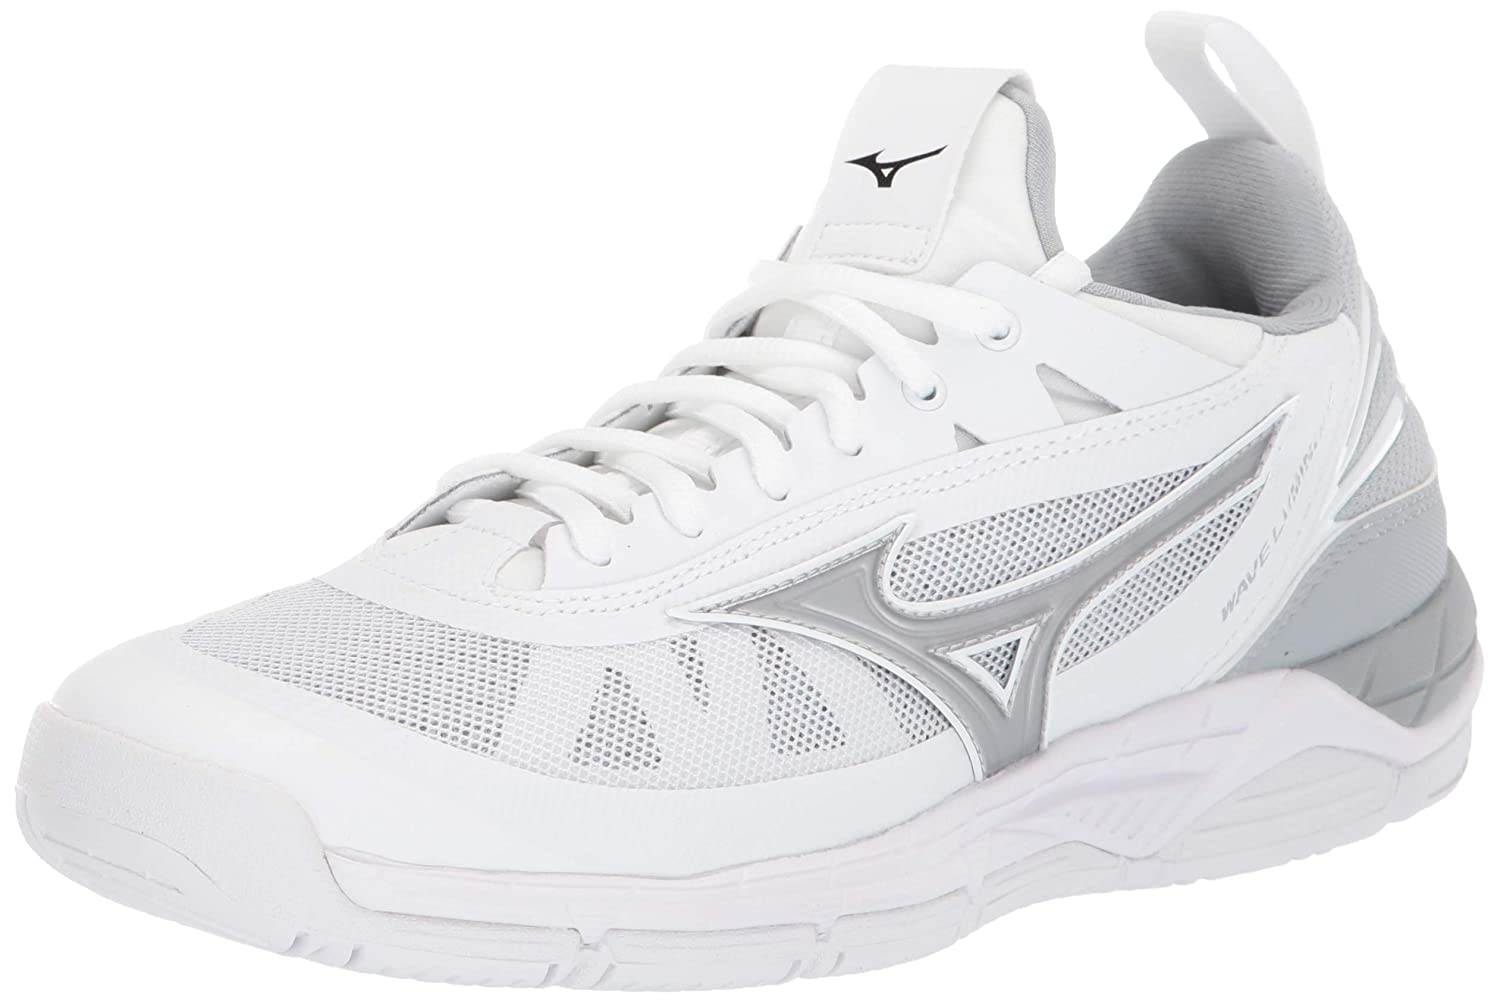 White-silver Mizuno Womens Wave Luminous Indoor Court shoes